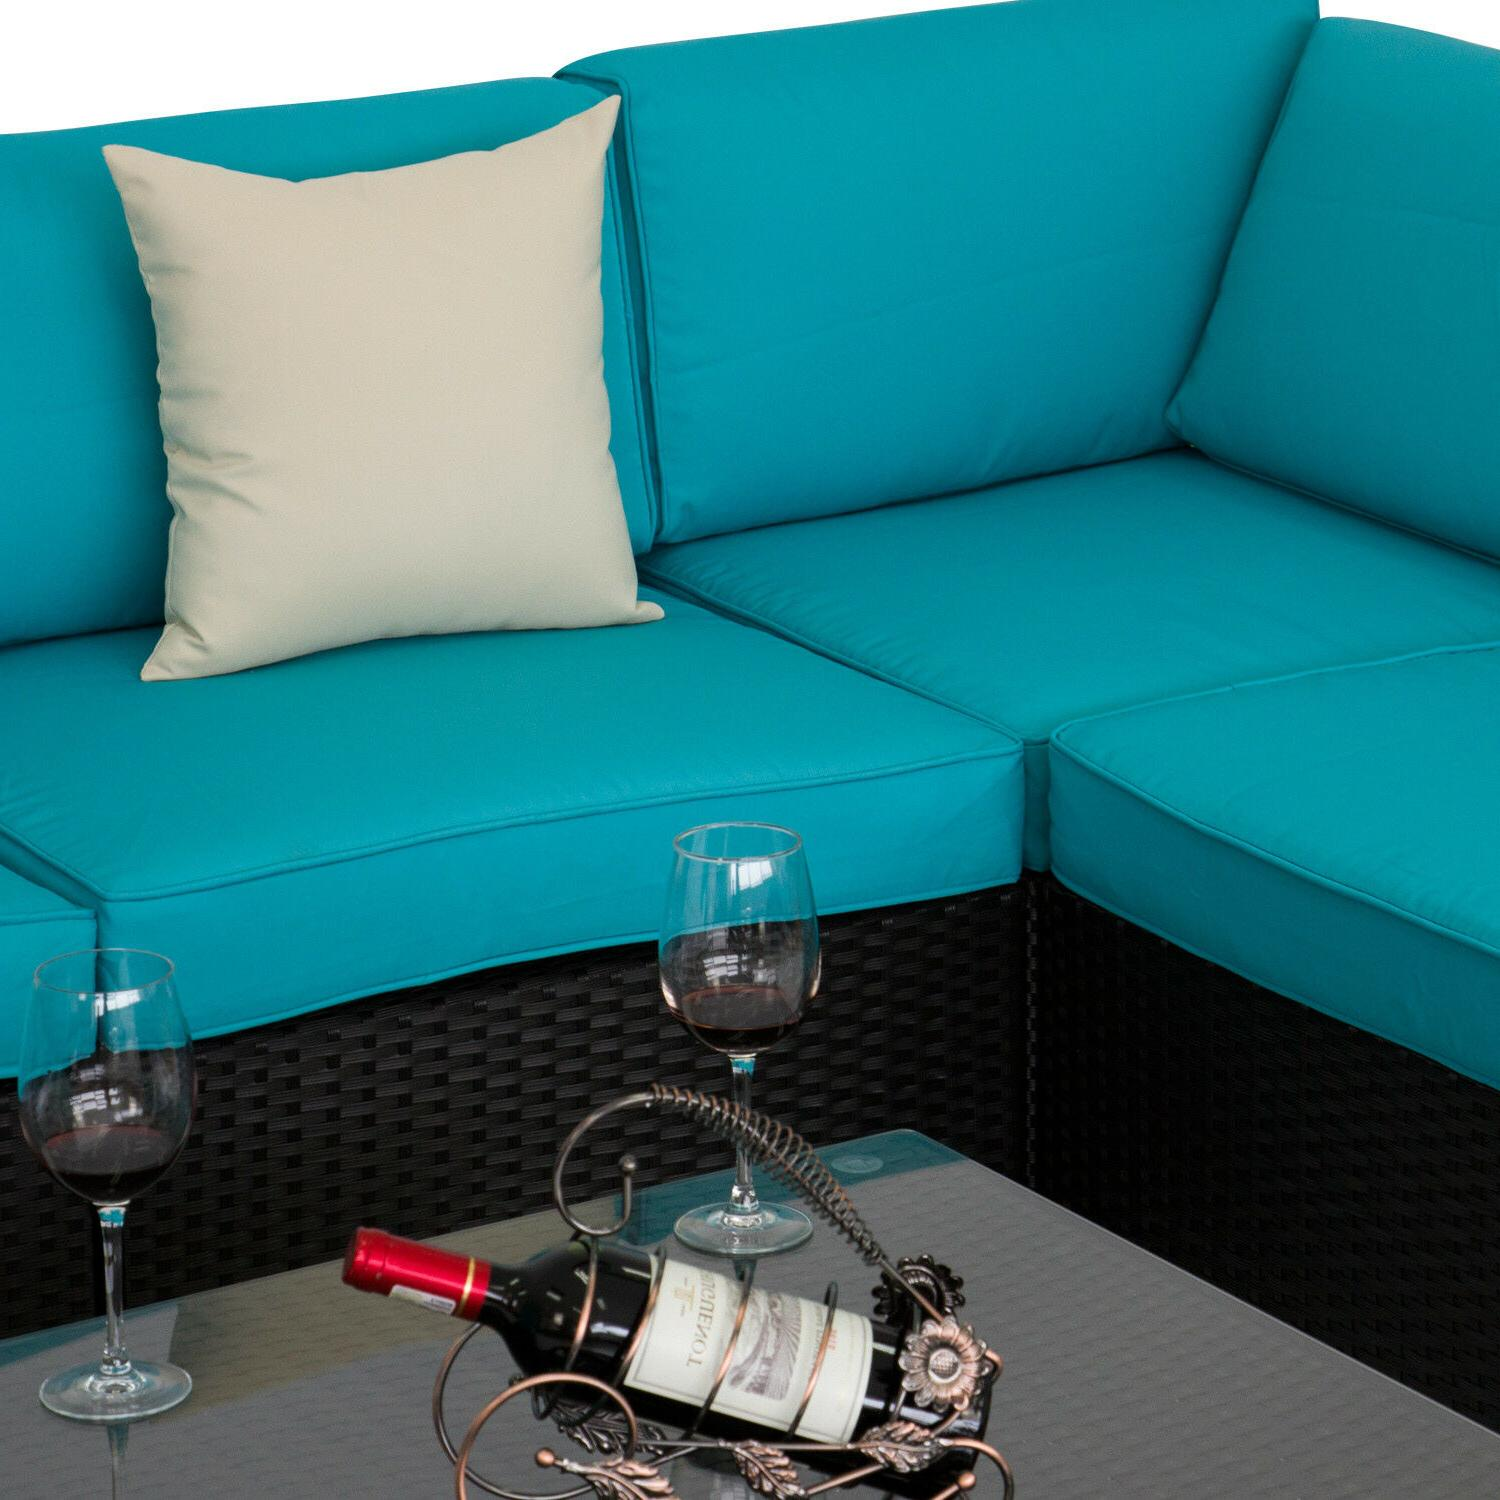 7PC Sofa Table Garden Sectional Furniture Blue